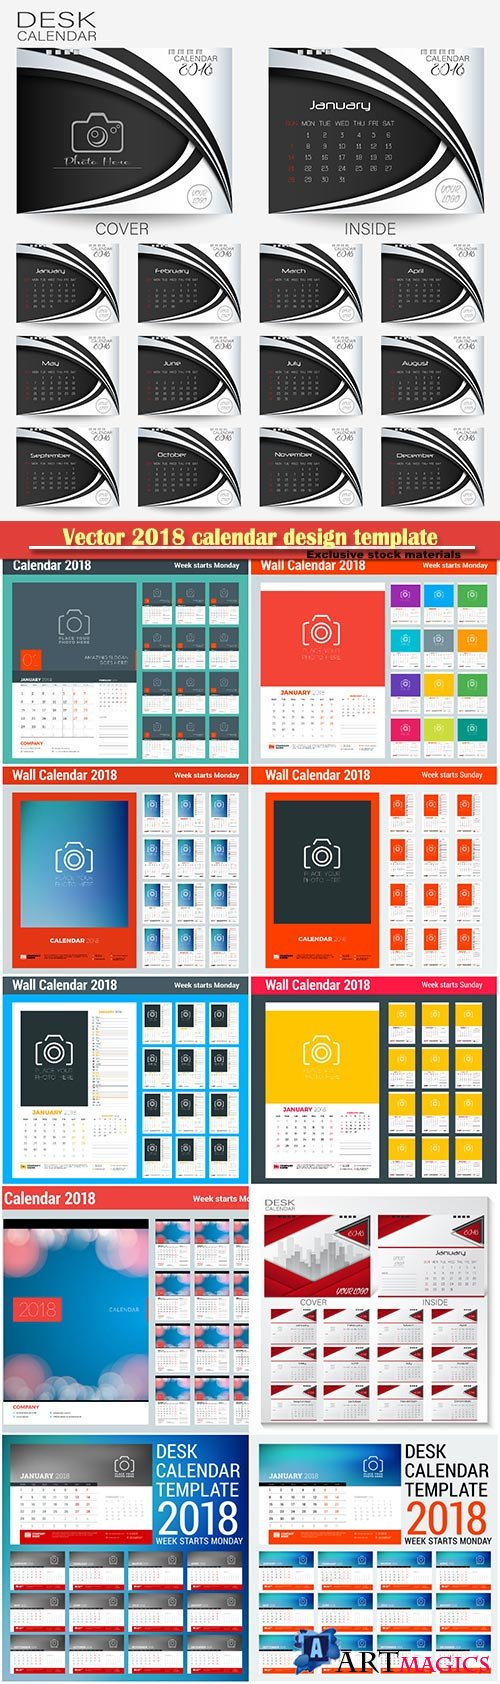 Vector 2018 calendar design template, place for photo